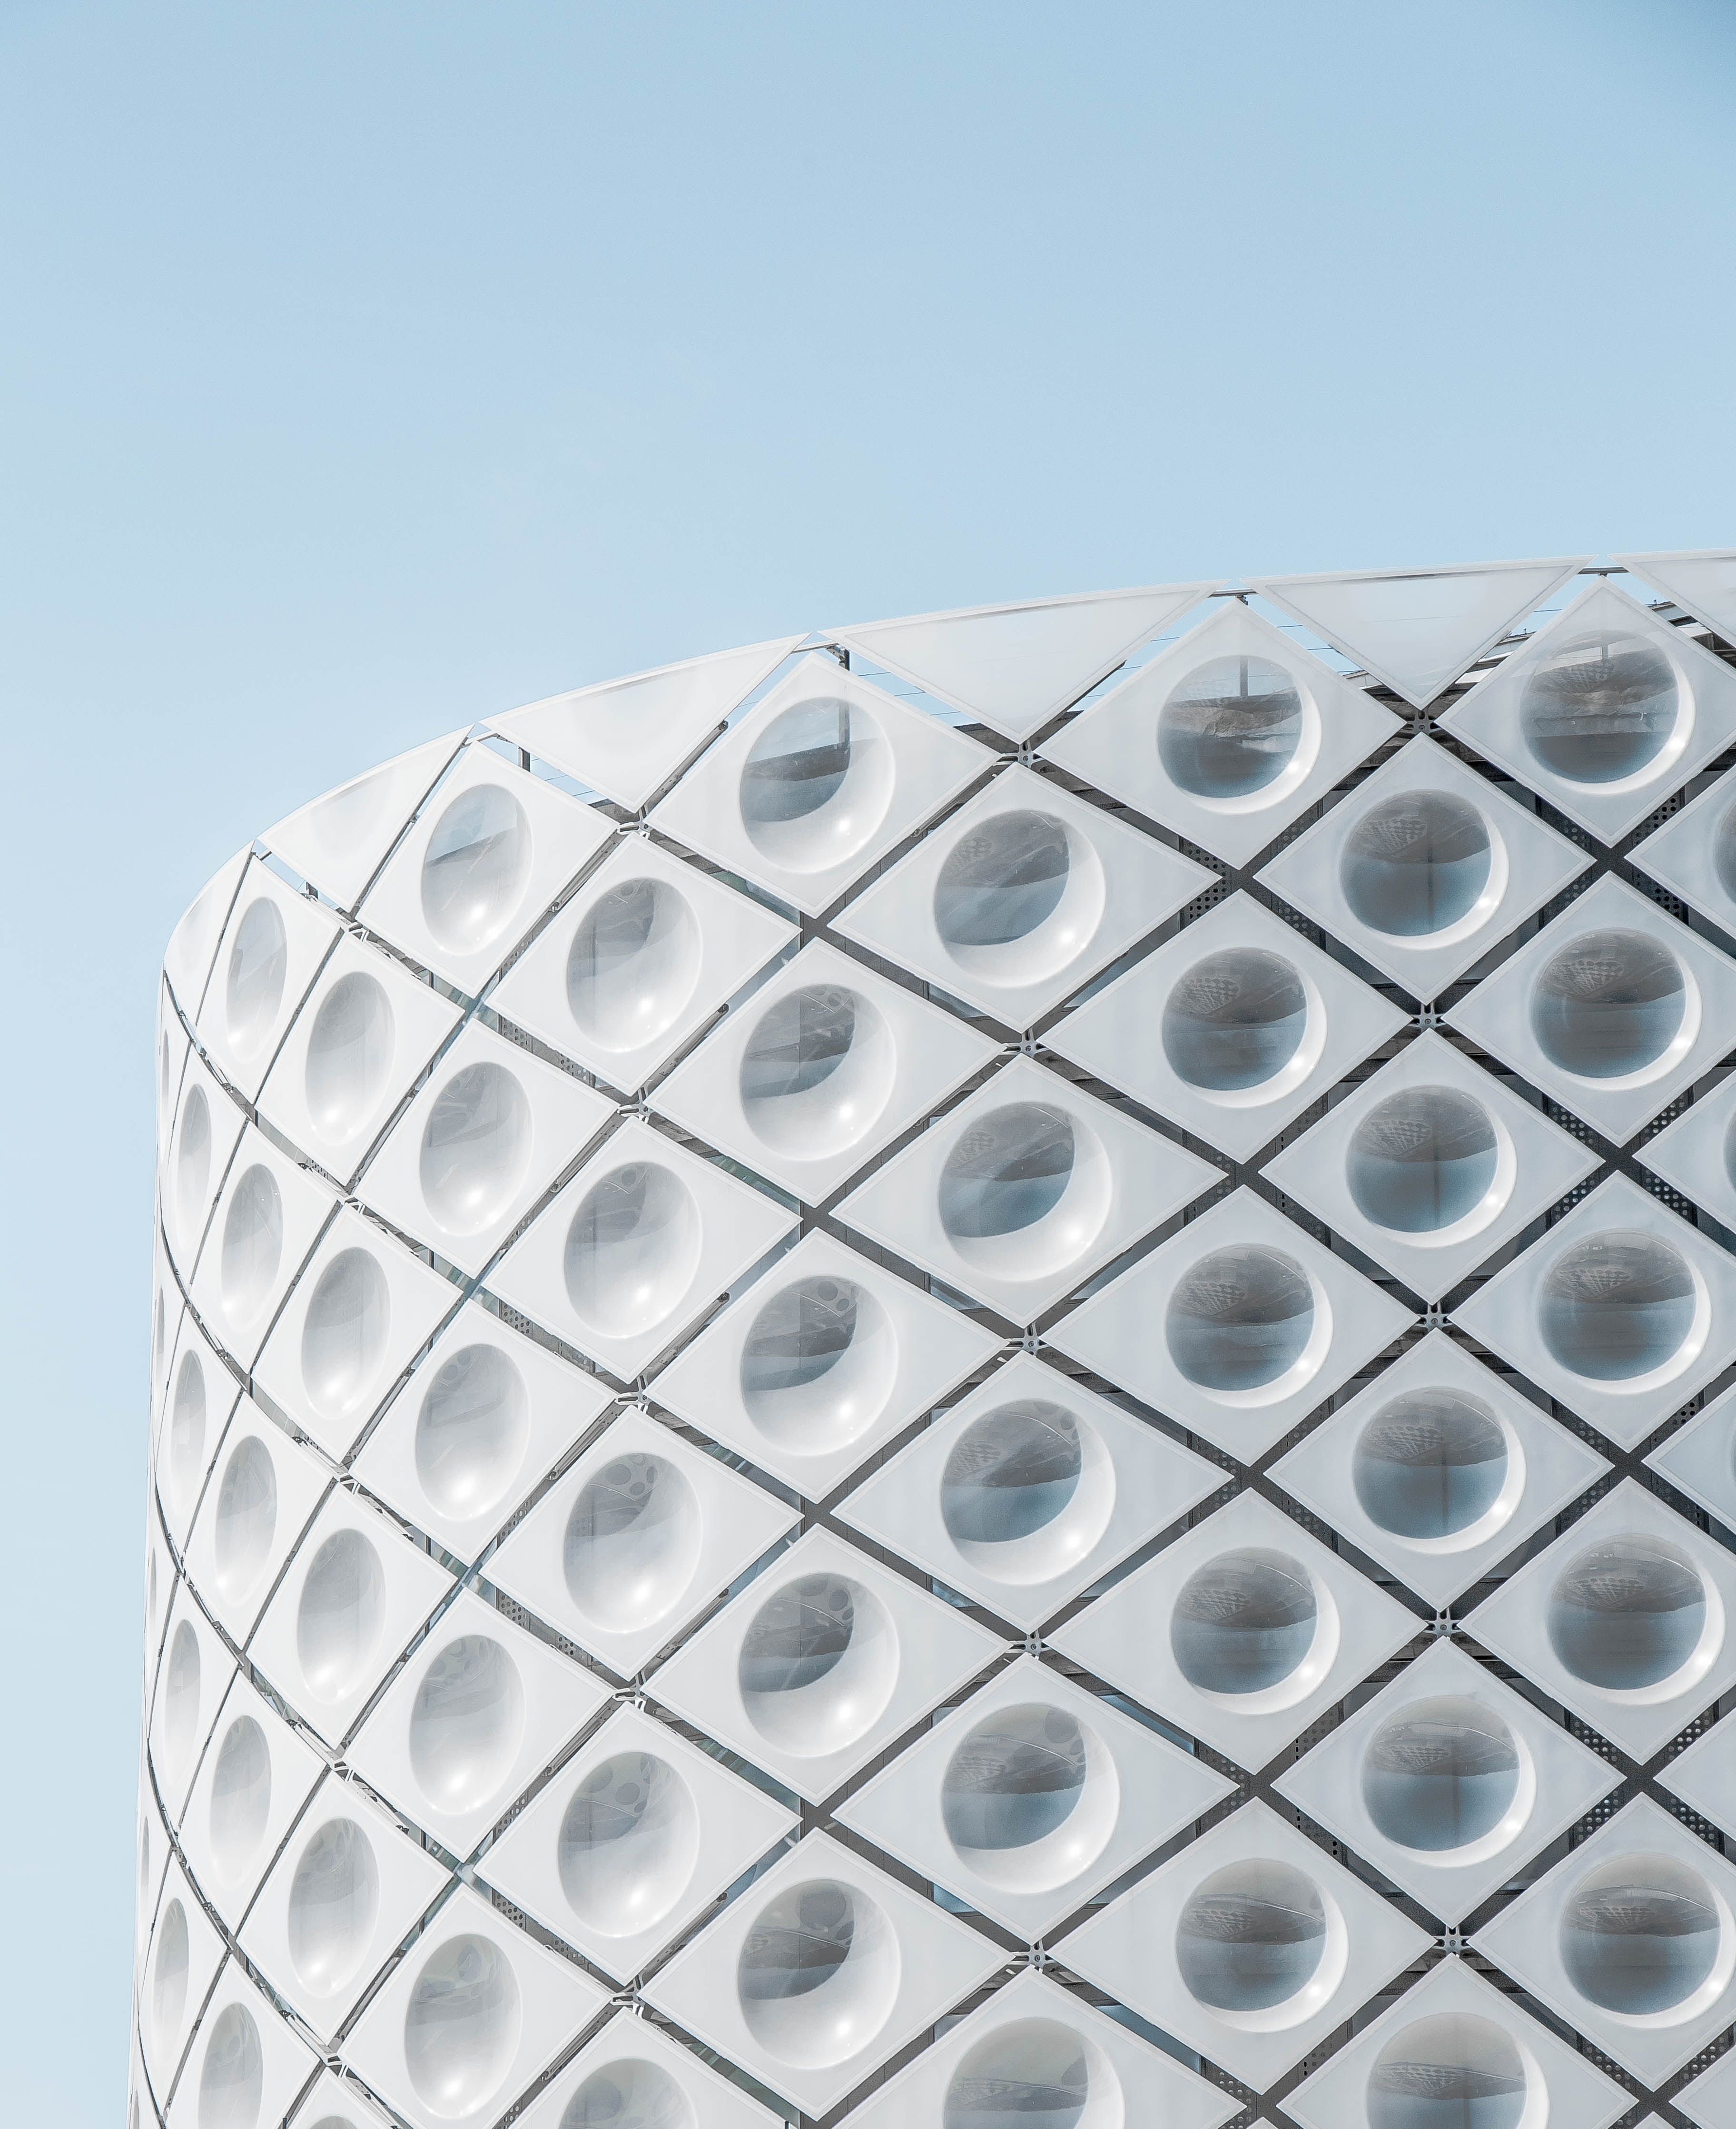 A white round facade with large translucent circles in Madrid